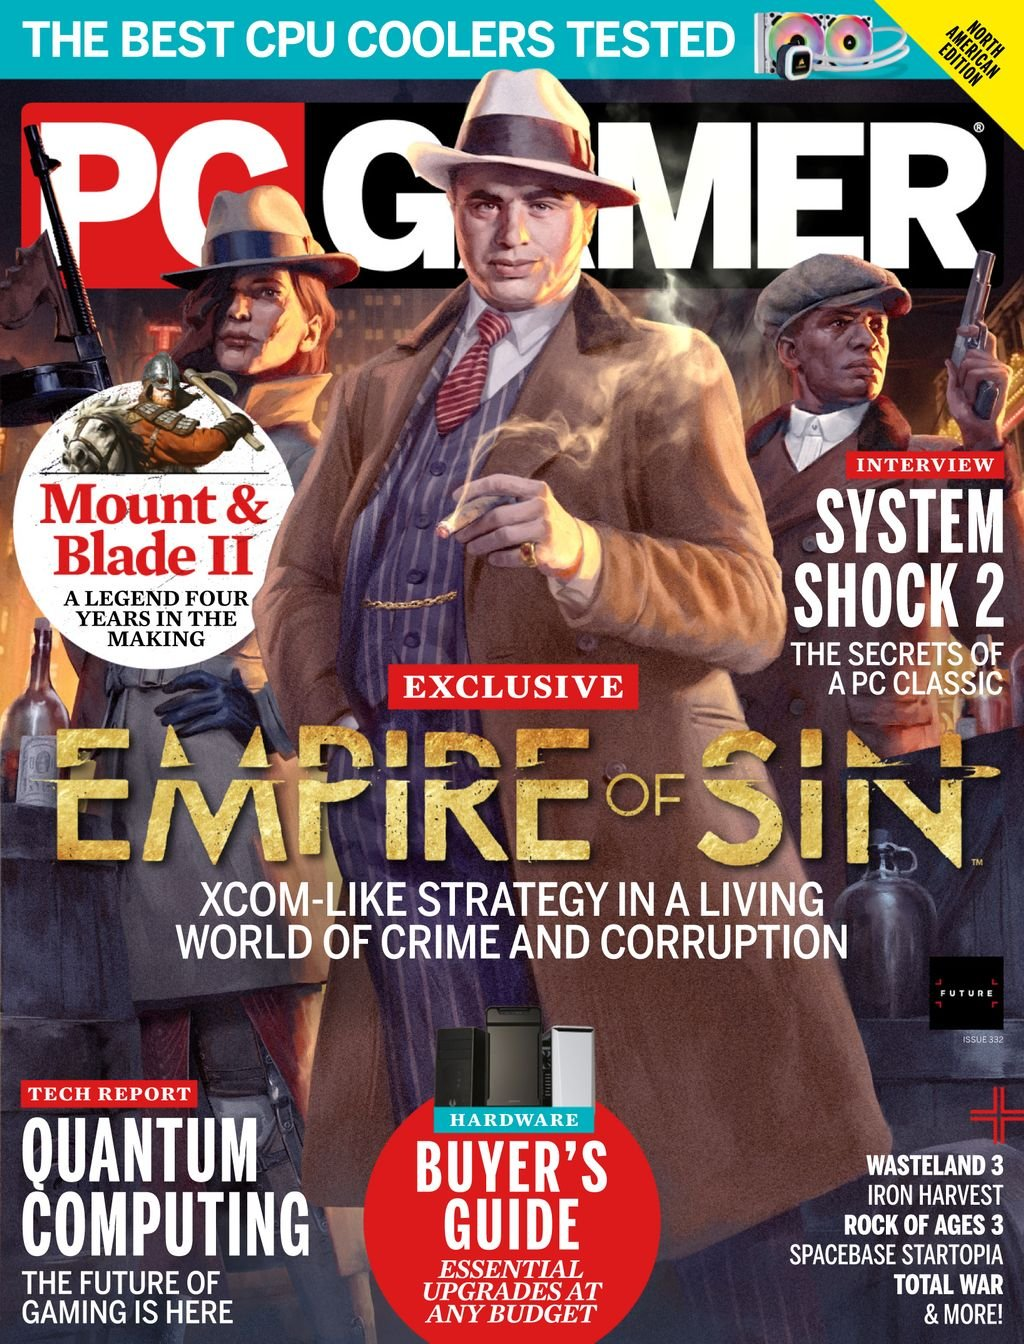 PC Gamer Issue 332 (July 2020)